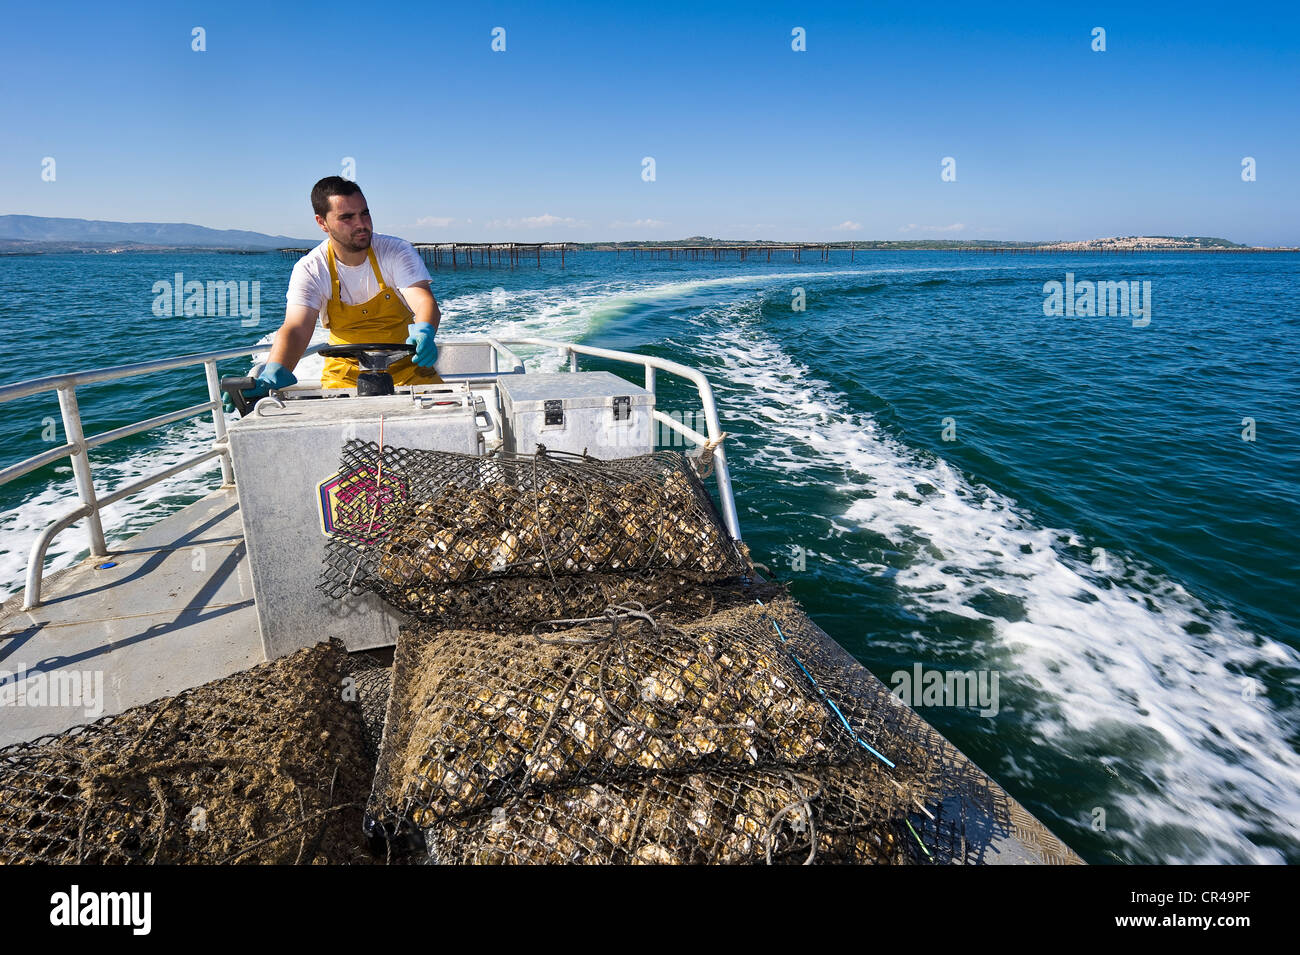 France, Aude, Corbieres, Leucate, Leucate Pond, flat barge carrying oysters from a conchological farm - Stock Image